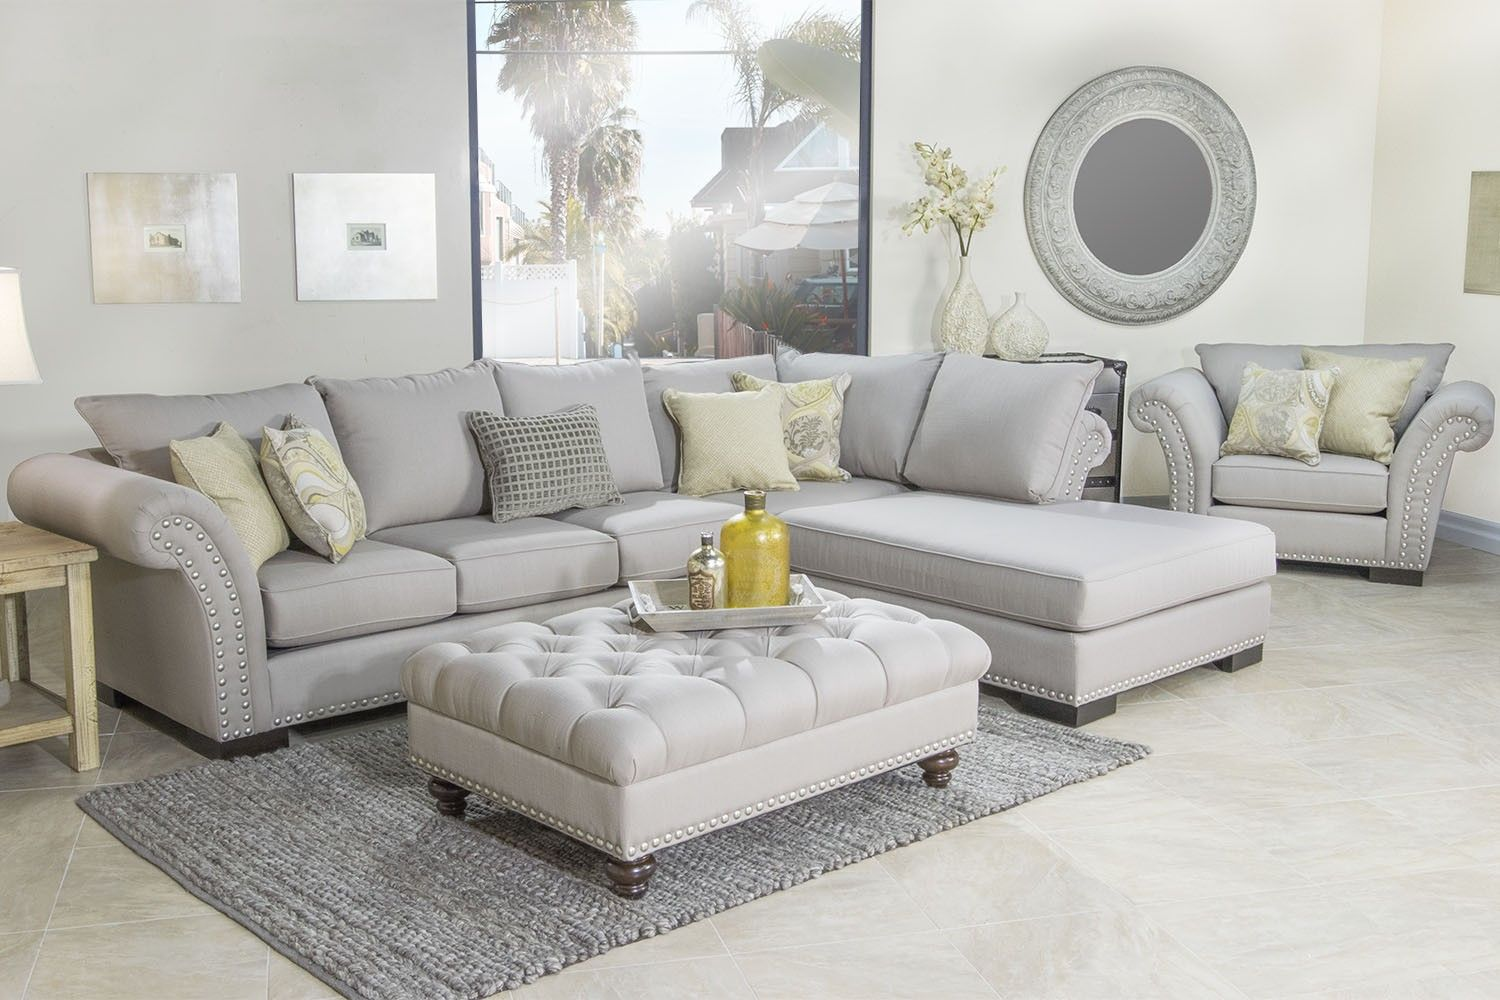 Klein Left-Facing Sectional - Sectionals - Living Room | Mor Furniture for Less : mor furniture sectionals - Sectionals, Sofas & Couches